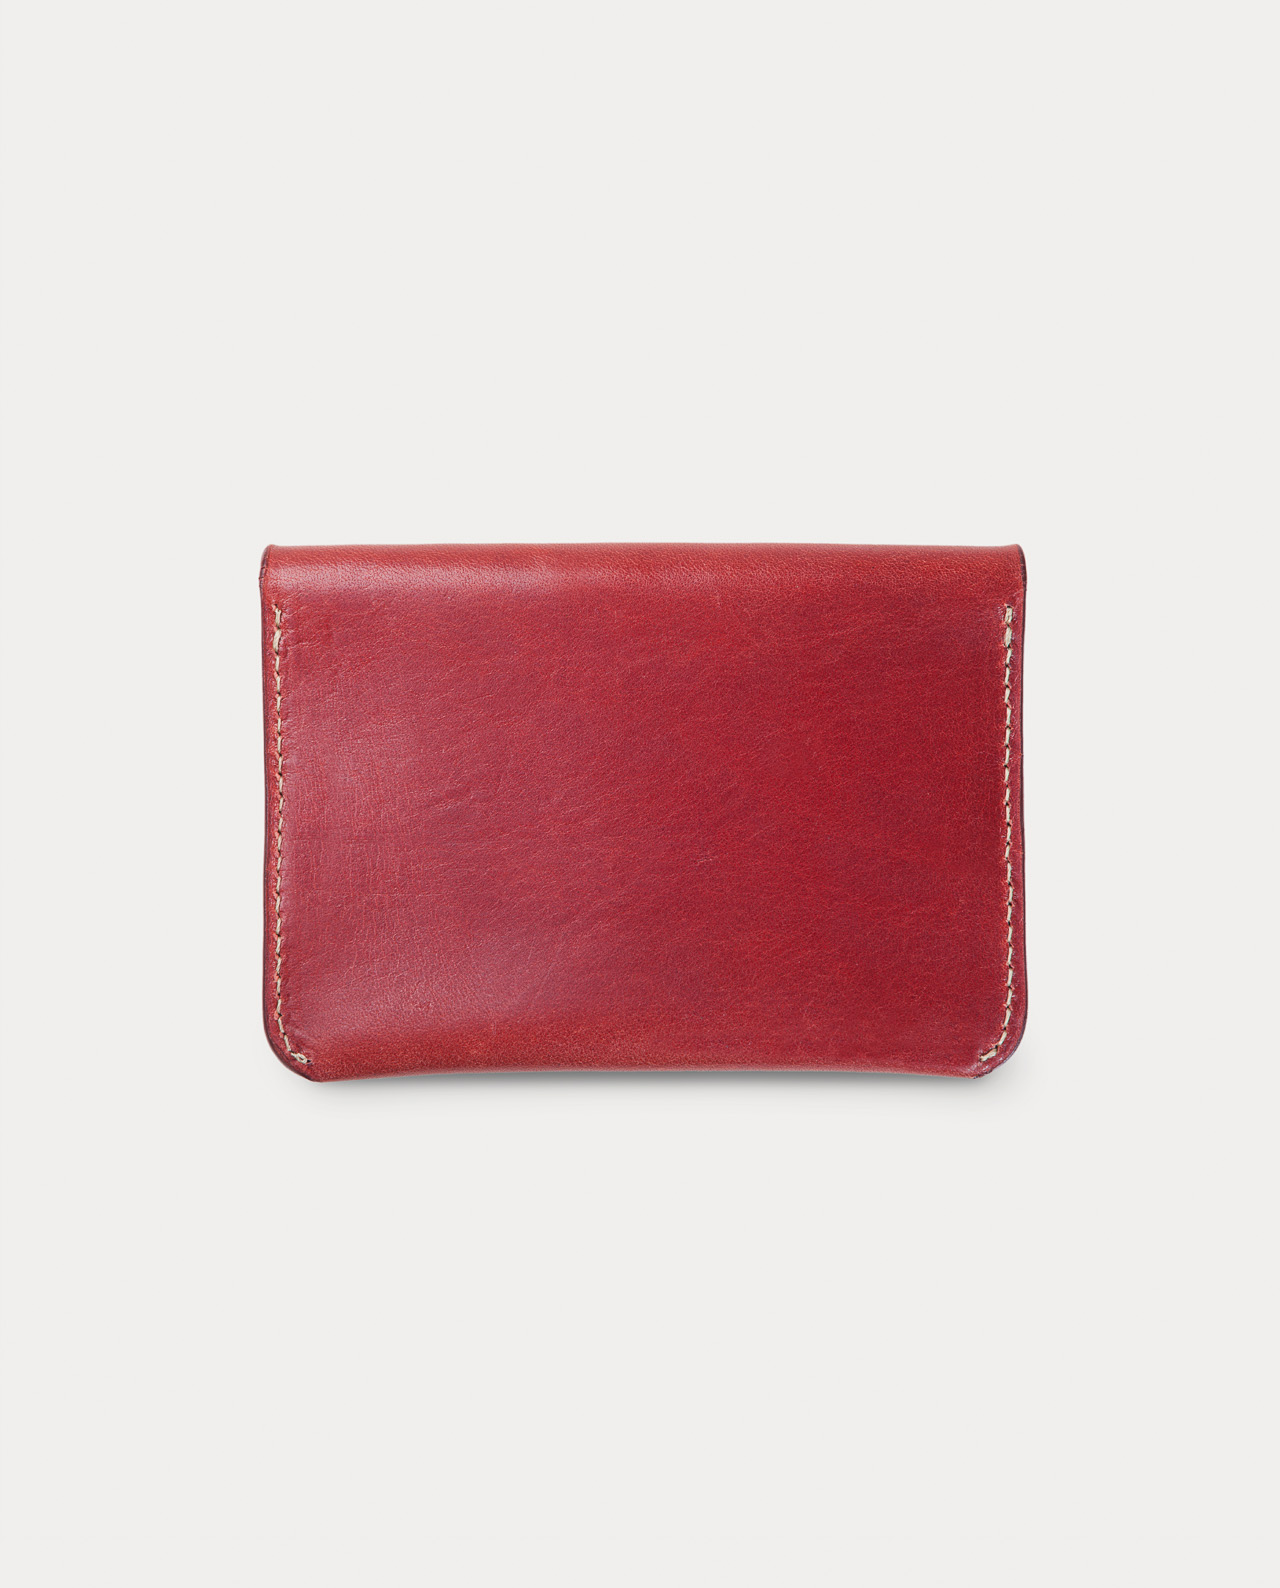 flap wallet red for coins, cards and bills